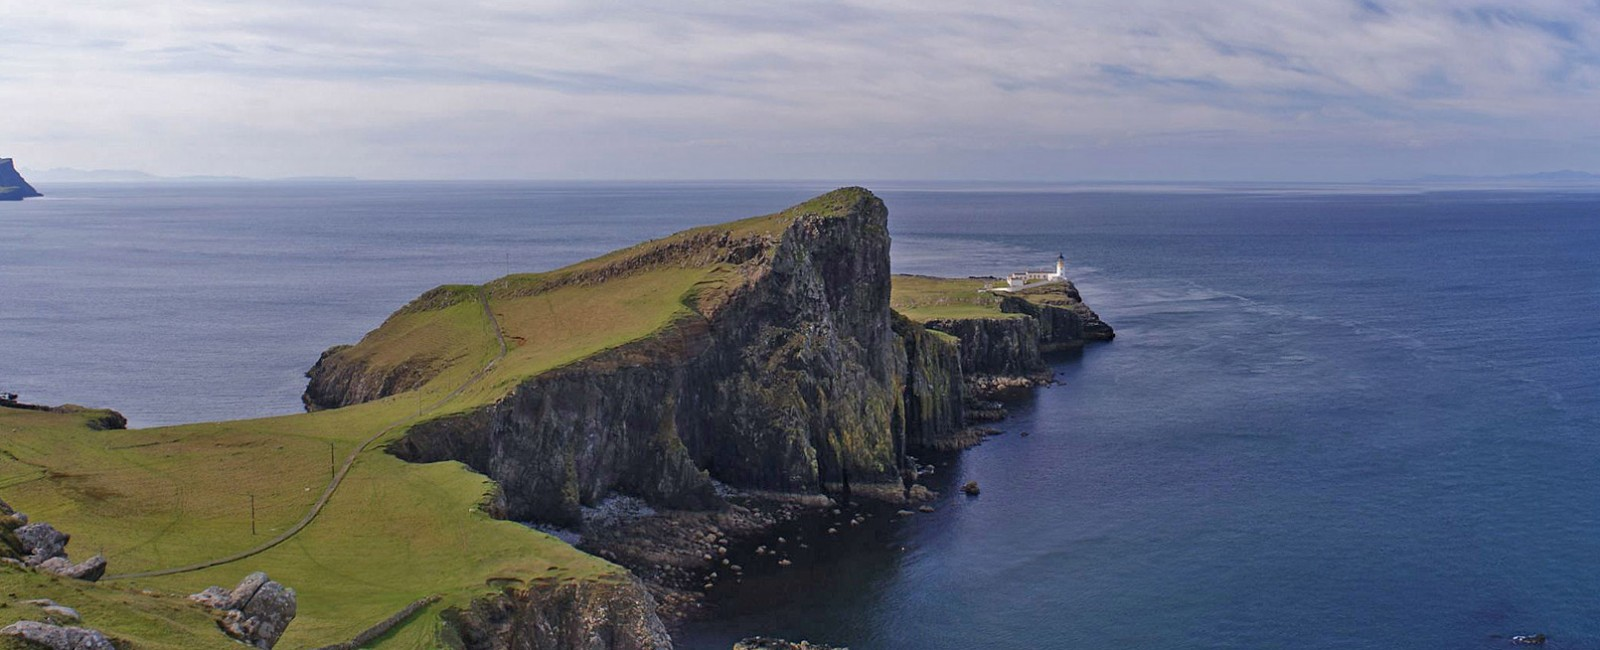 Neist Point Lighthouse - Just a 5 minute drive away